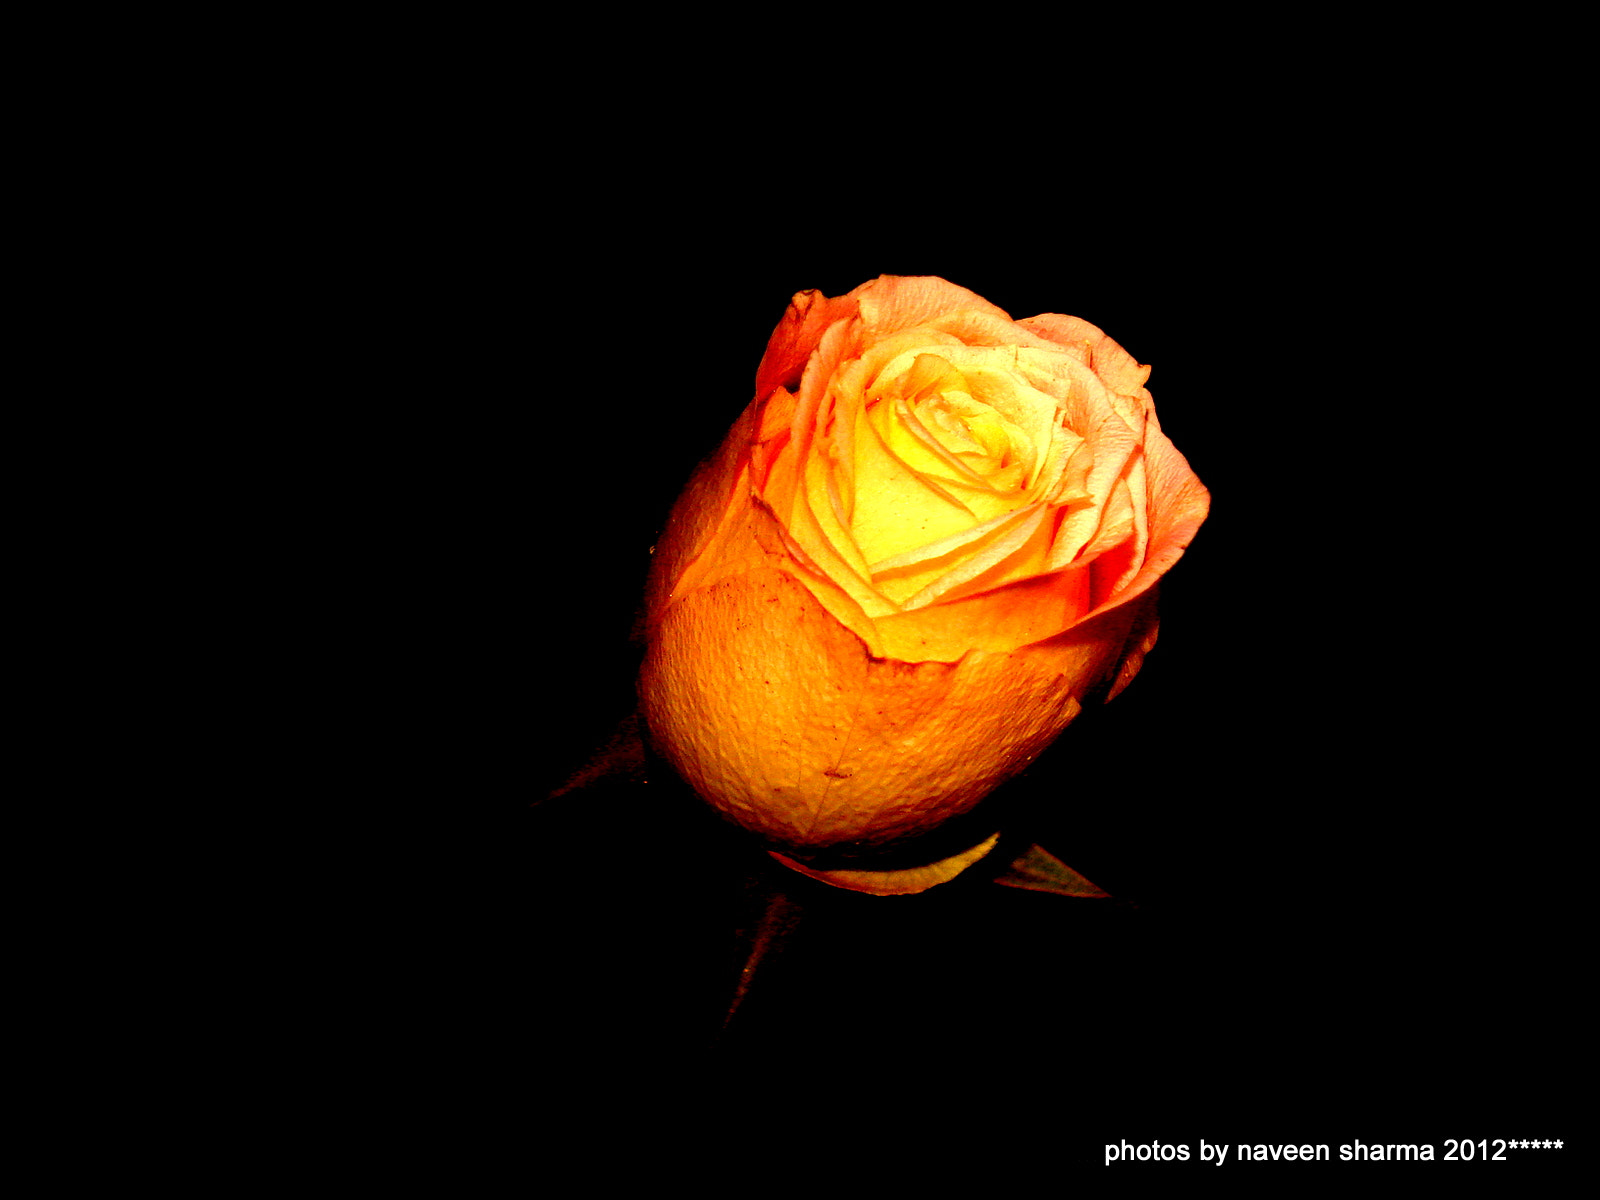 Photograph ROSE GLAMOUR by naveen sharma on 500px